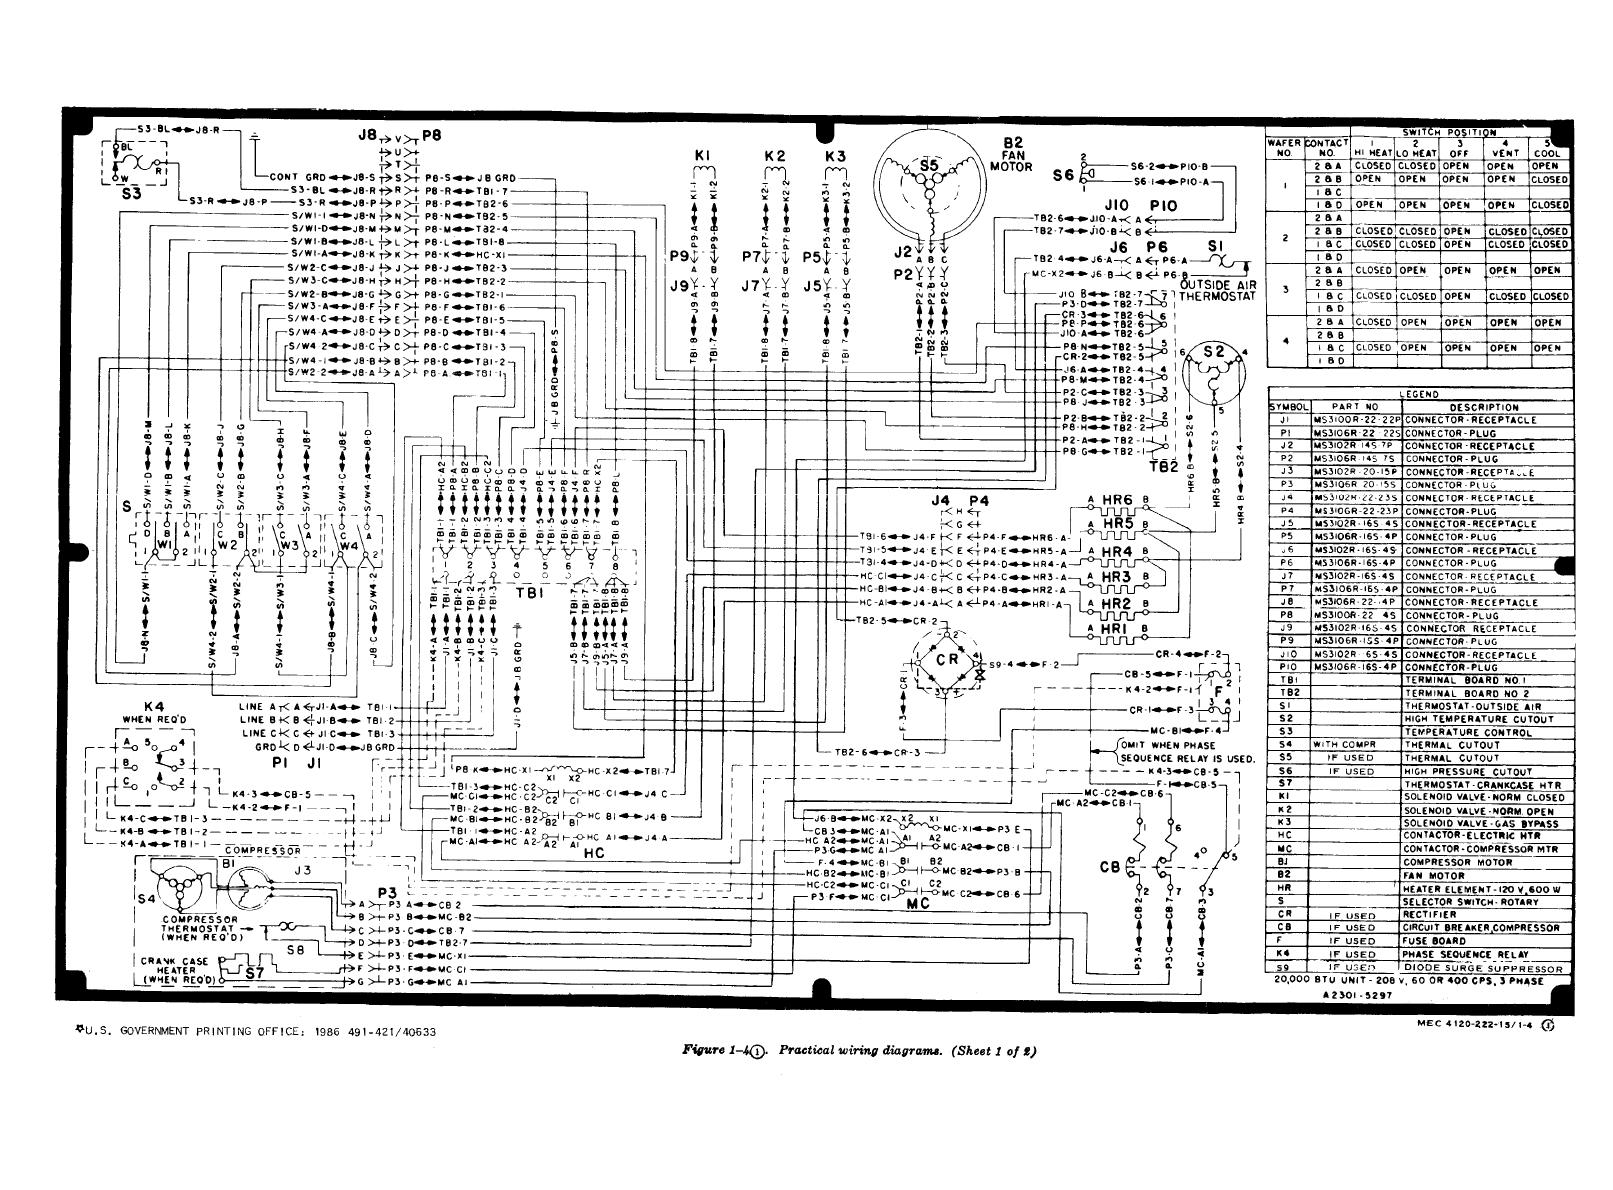 trane air handler model bwh718a100a1 wiring diagram. Black Bedroom Furniture Sets. Home Design Ideas